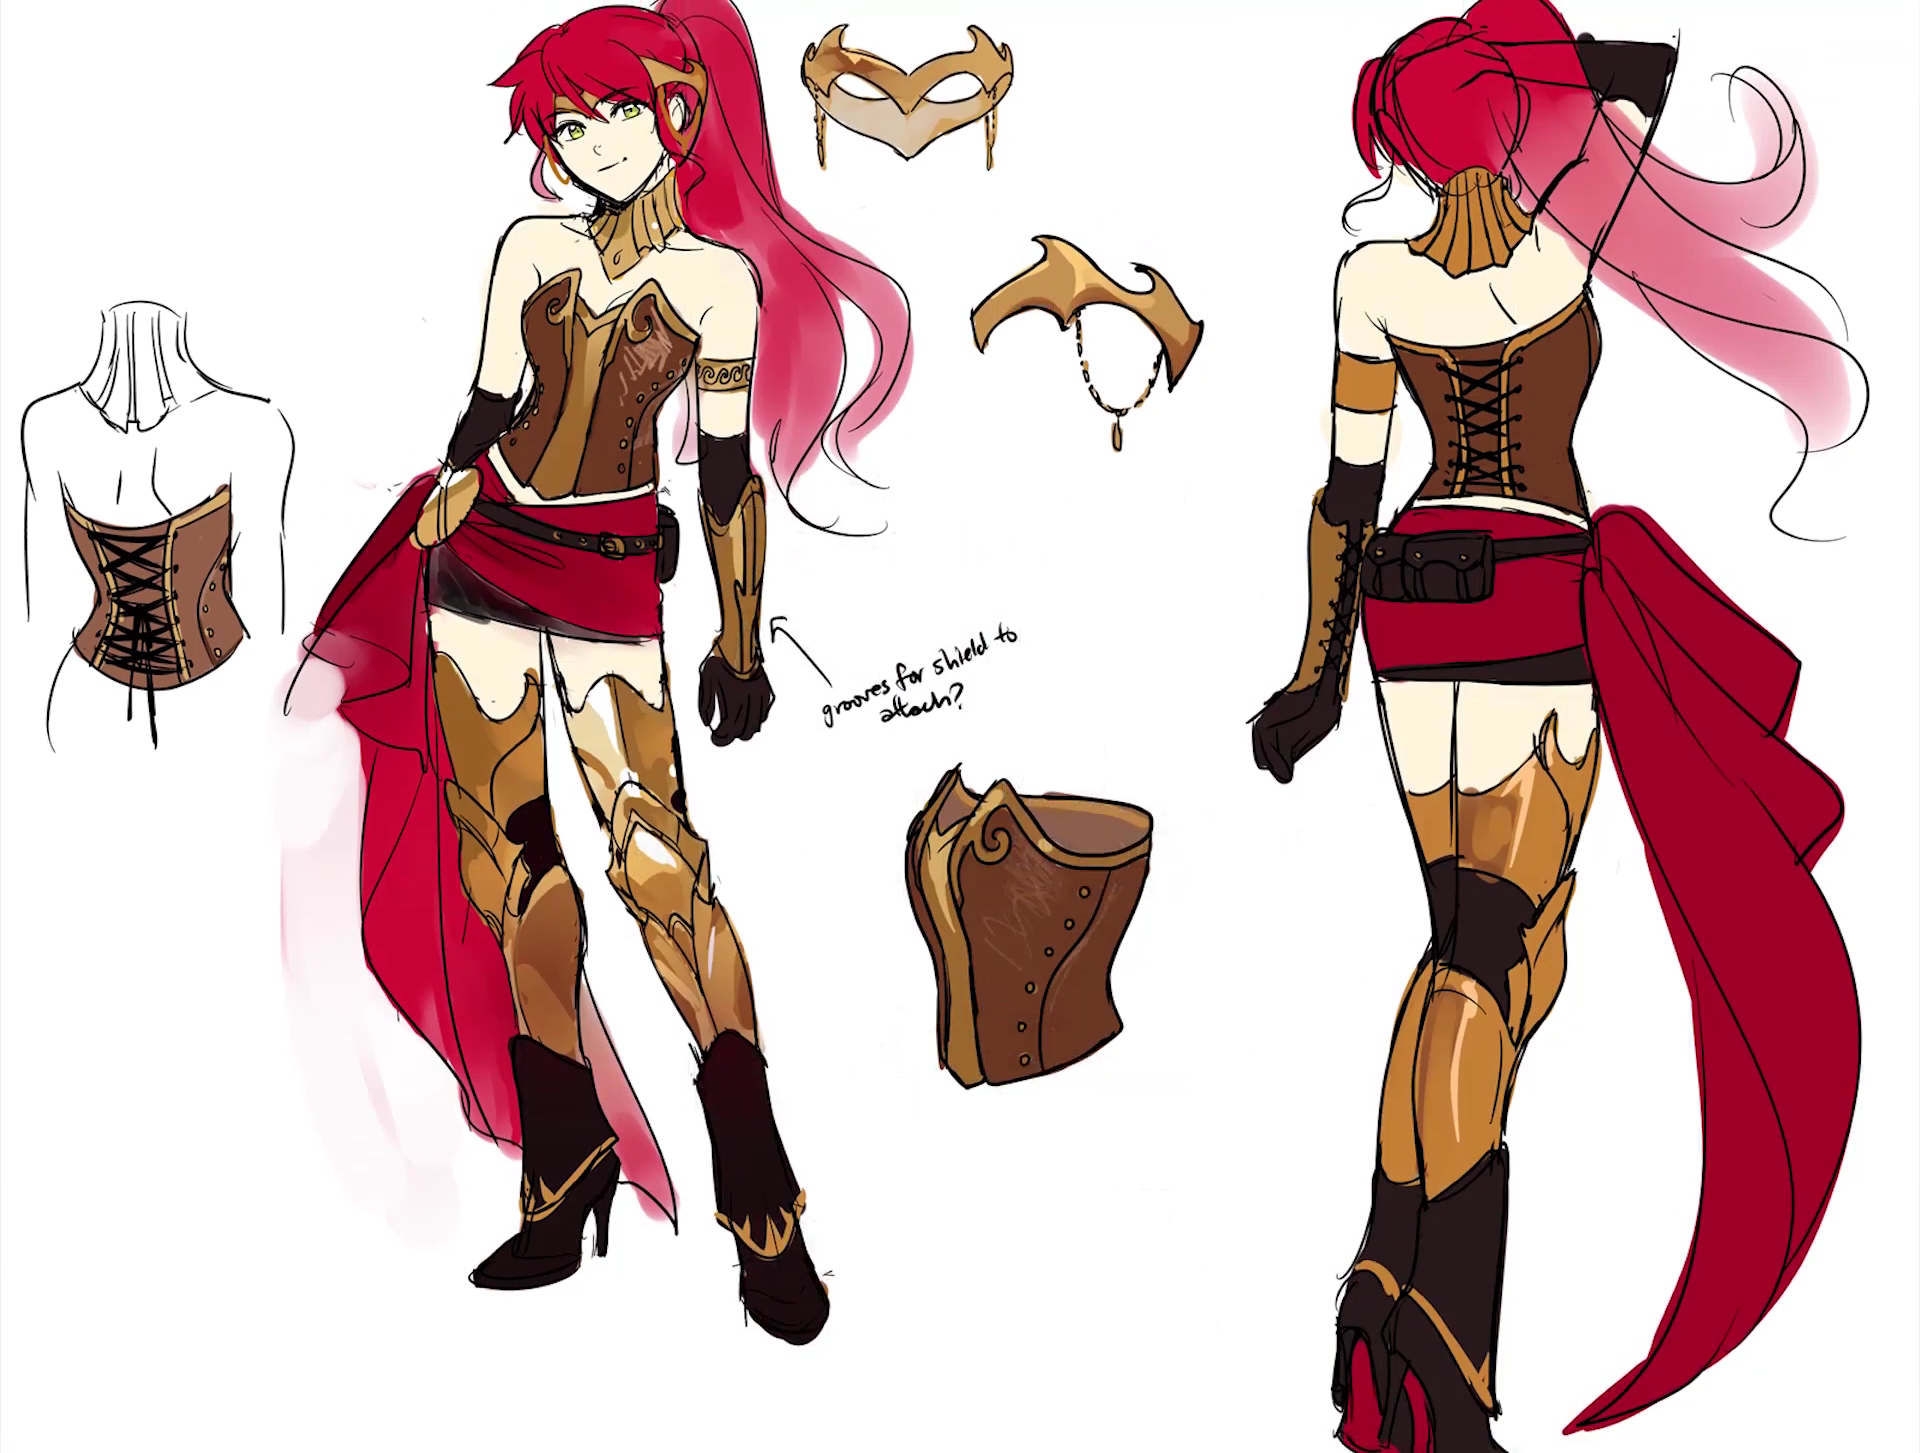 pyrrha nikos image gallery art fall and concept art compilation of references for rwby characters weapons etc please use anything you see for your personal needs whether it be for fanart or cosplay